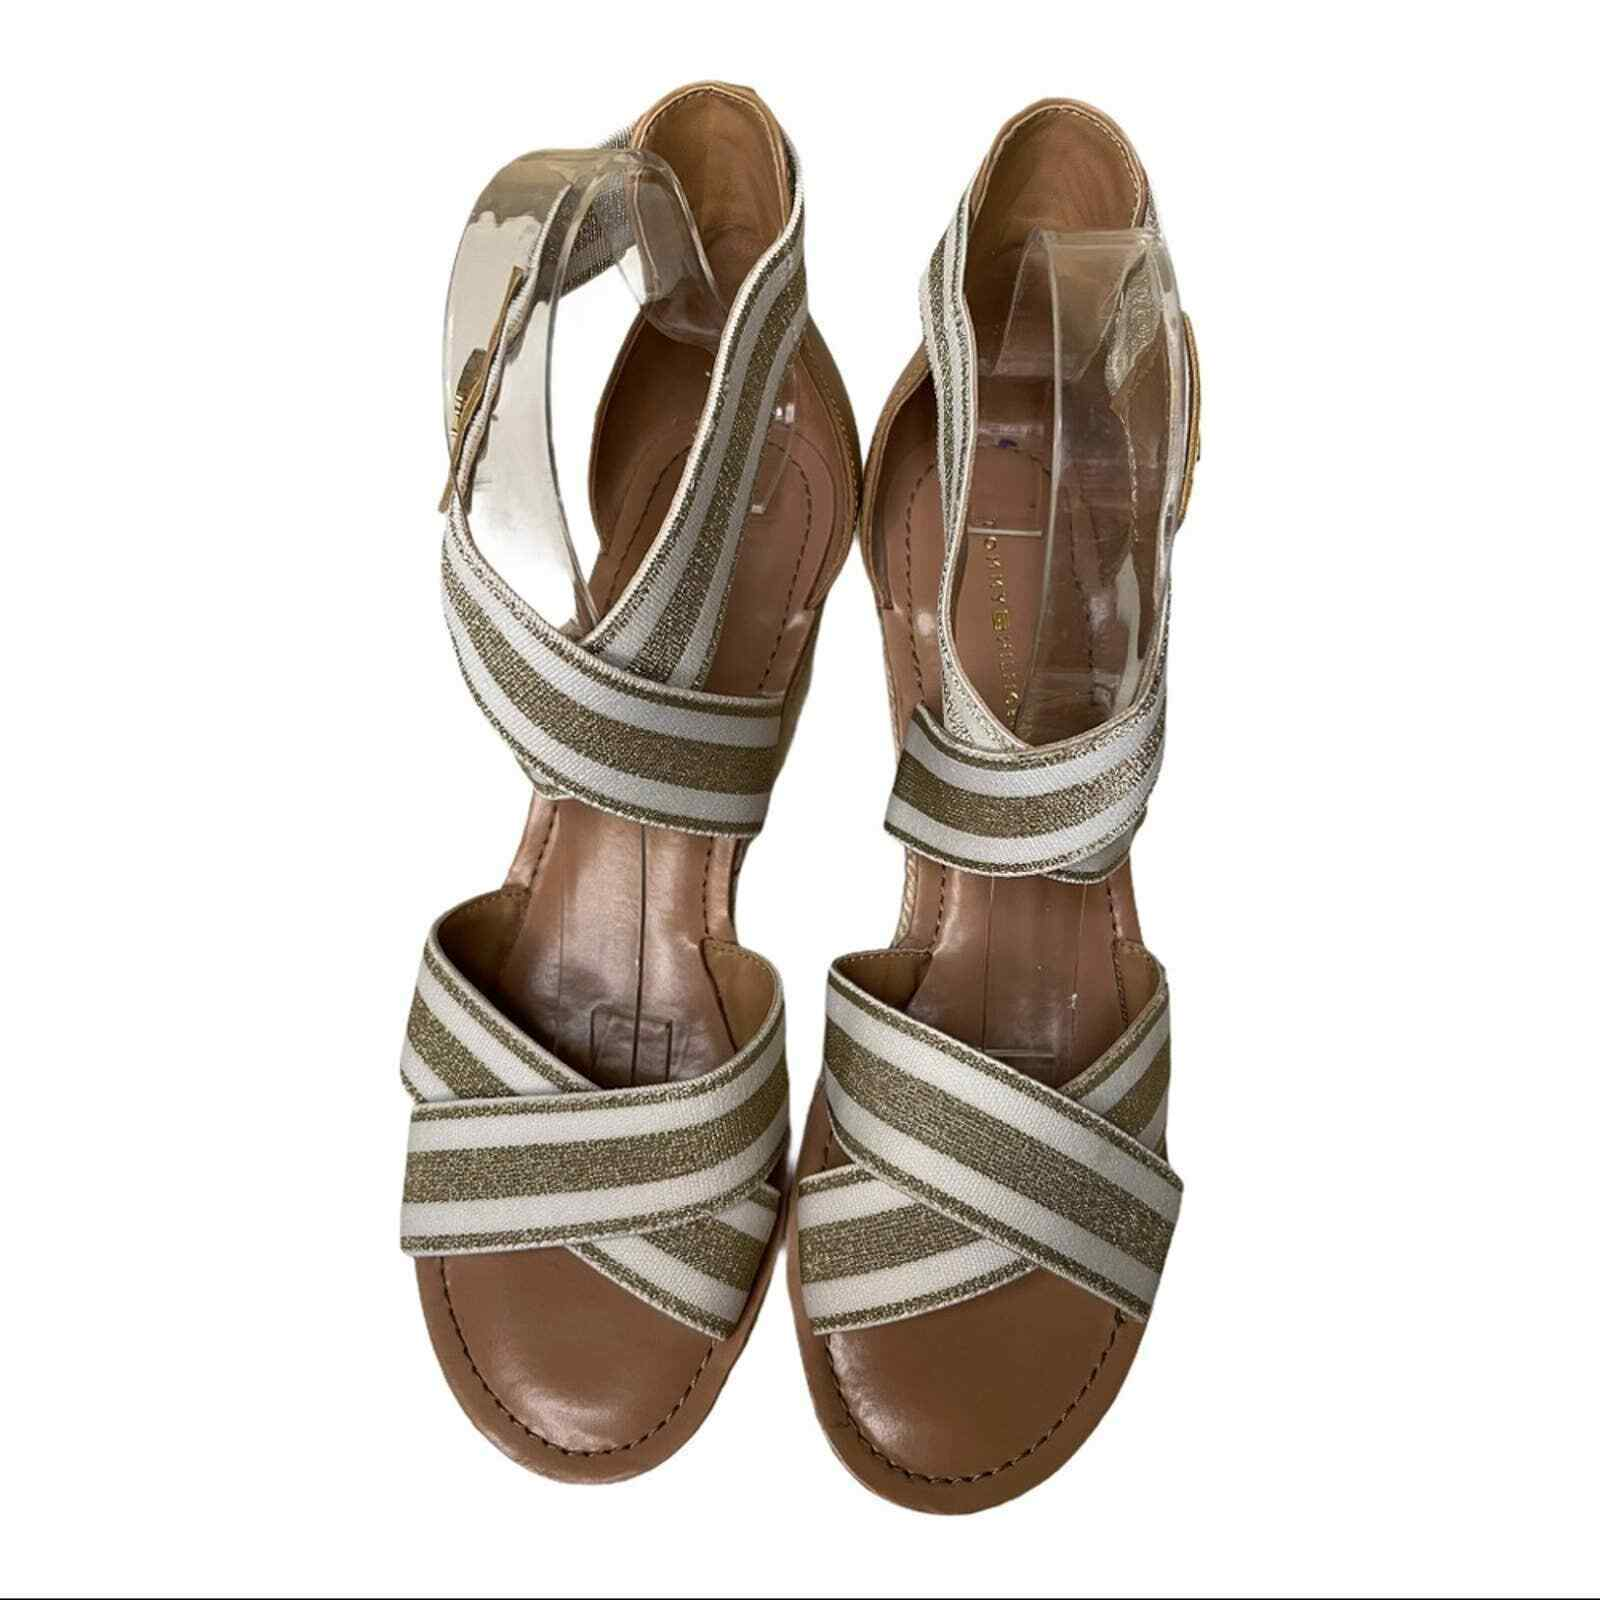 Tommy Hilfiger Theia Wedges Size 8.5 - image 3